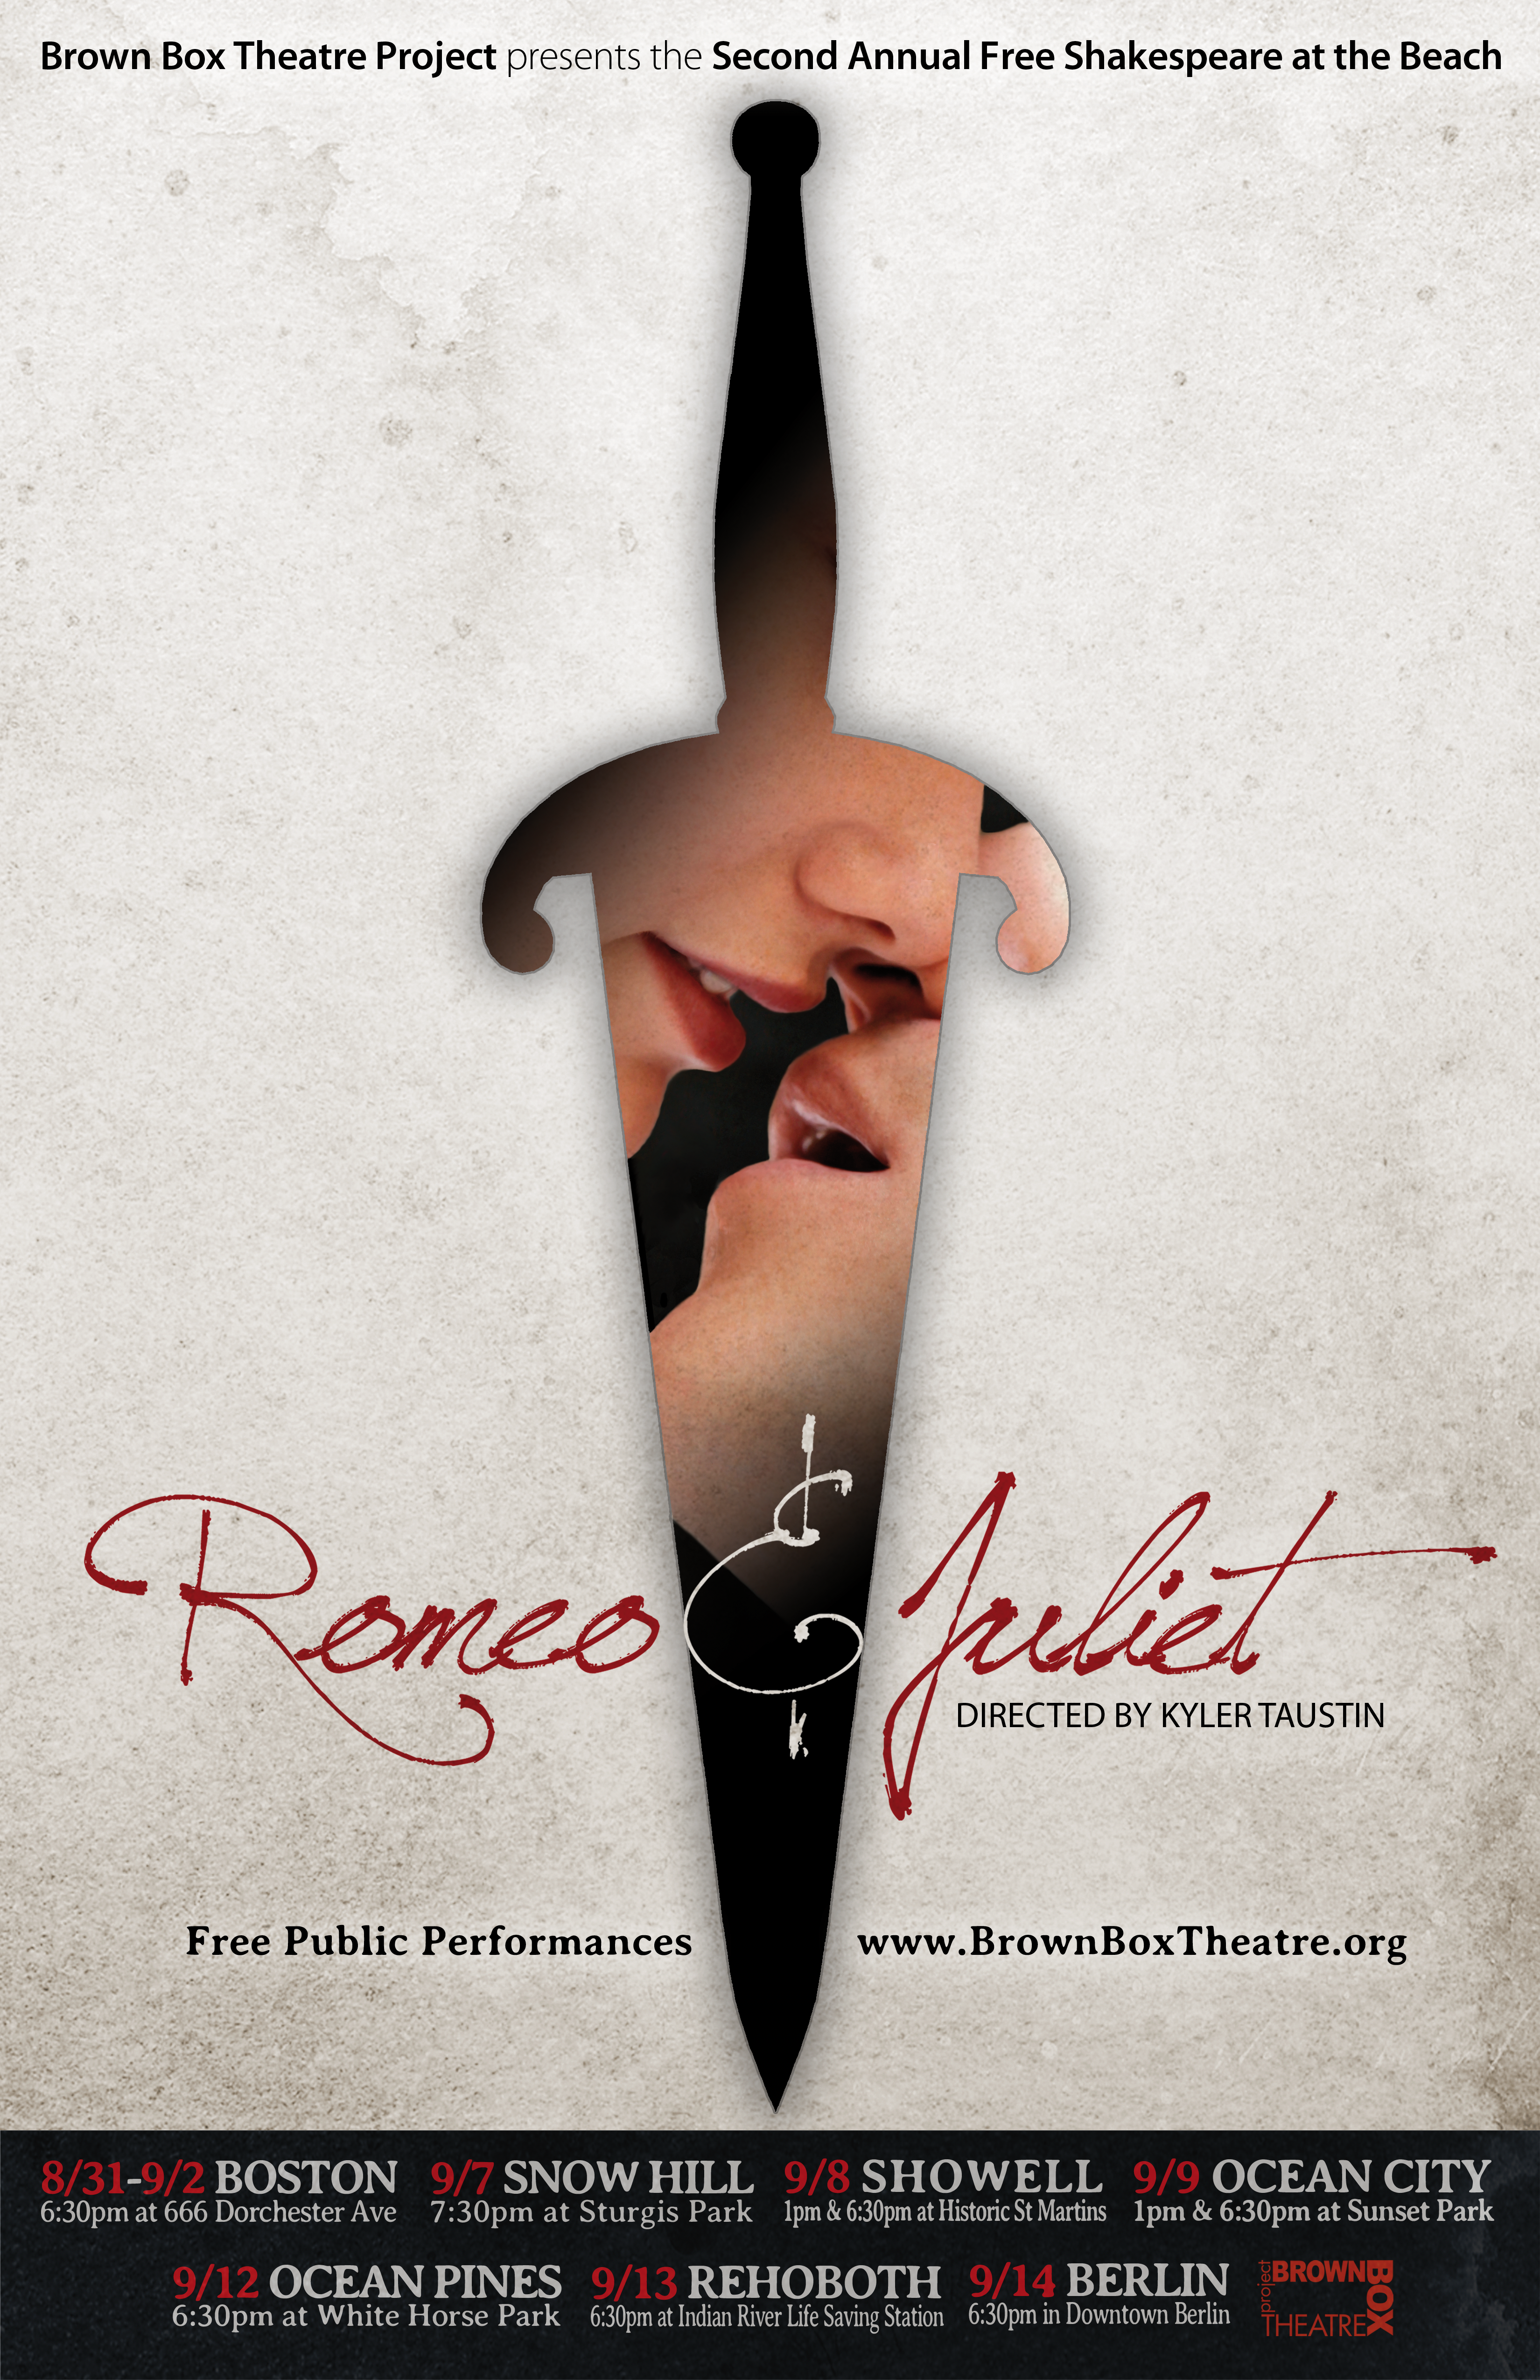 poster for a Romeo and Juliet play